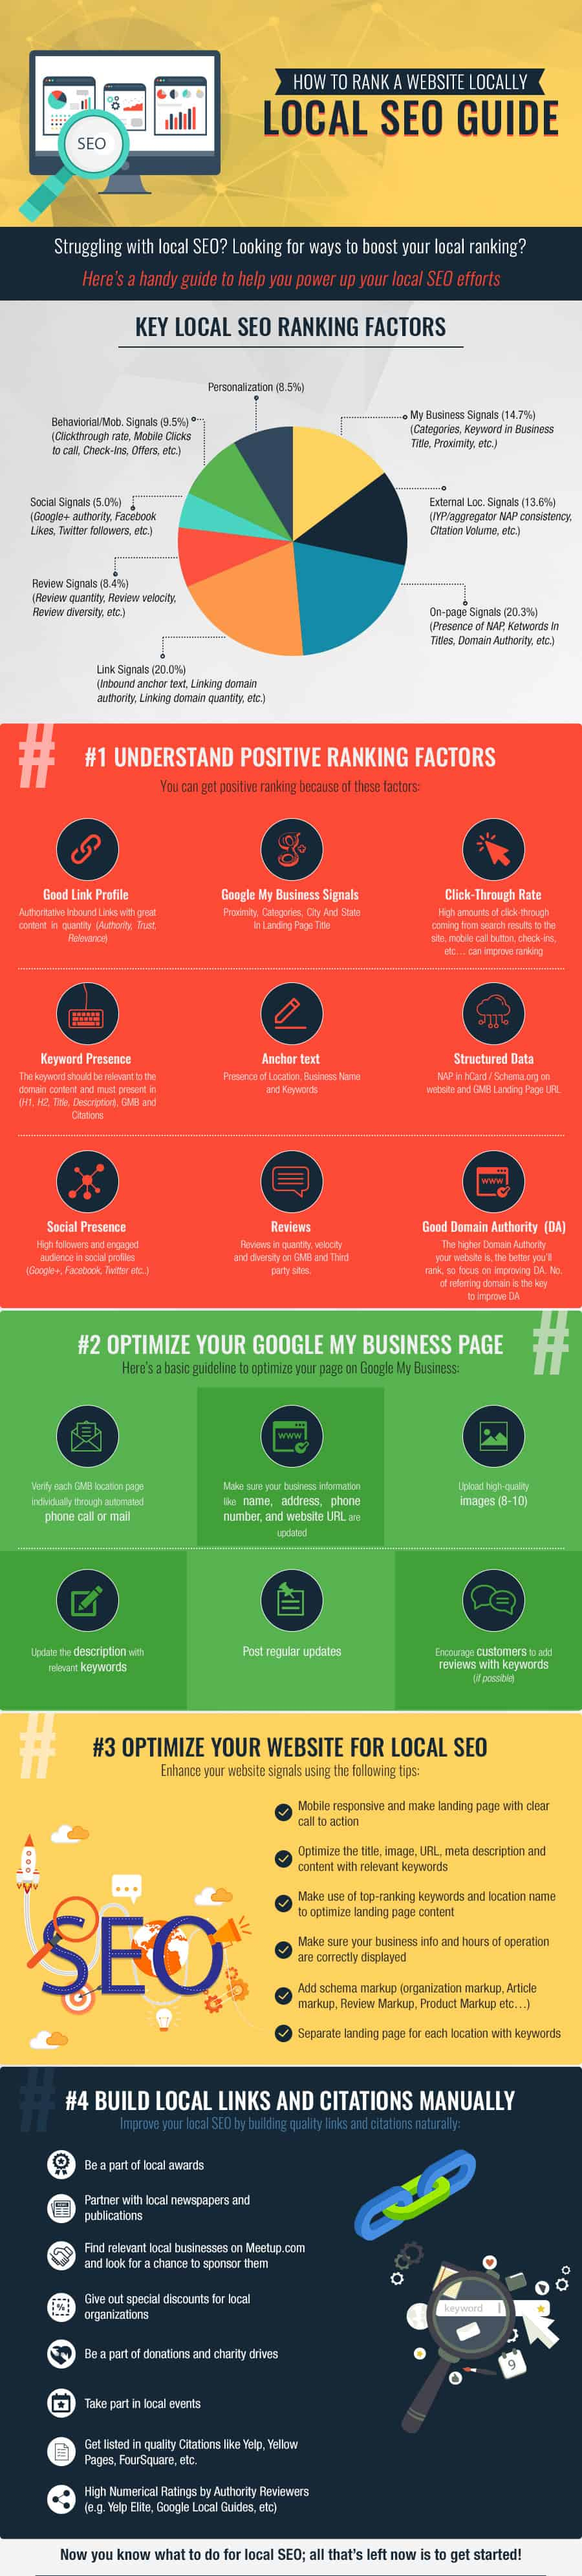 Local-SEO-Guide-Infographic